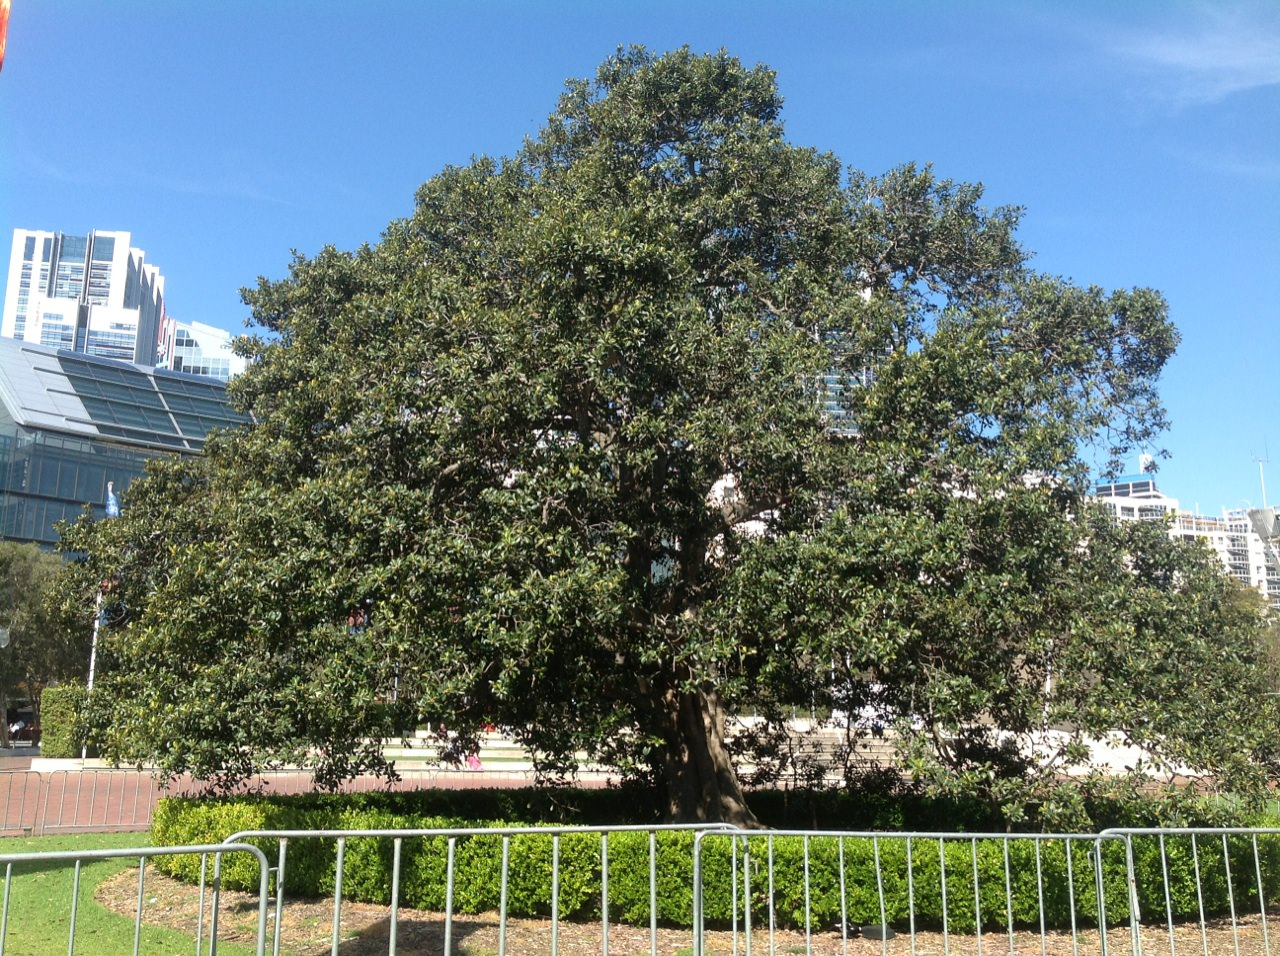 The translocated Port Jackson Fig located in Tumbalong Park, in Darling Harbour.